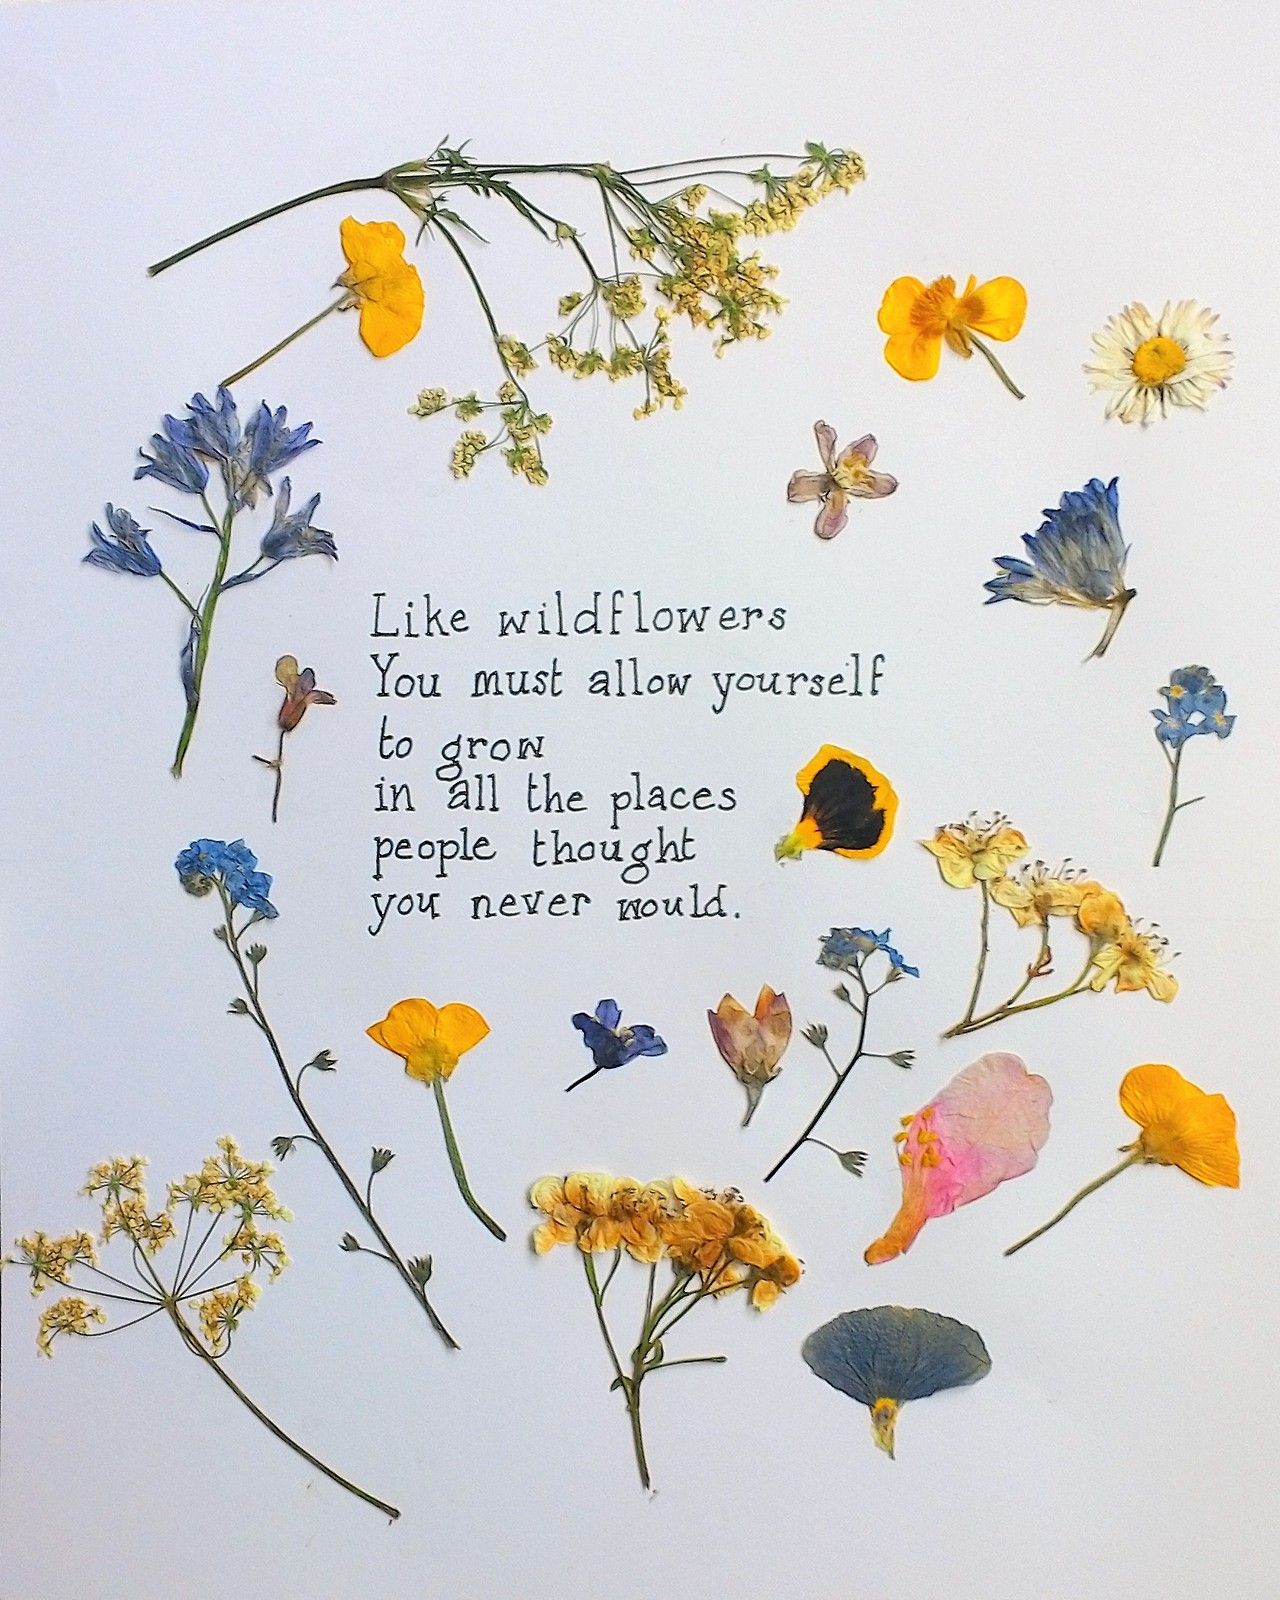 Wildflowers Quotes about flowers blooming, Flower quotes